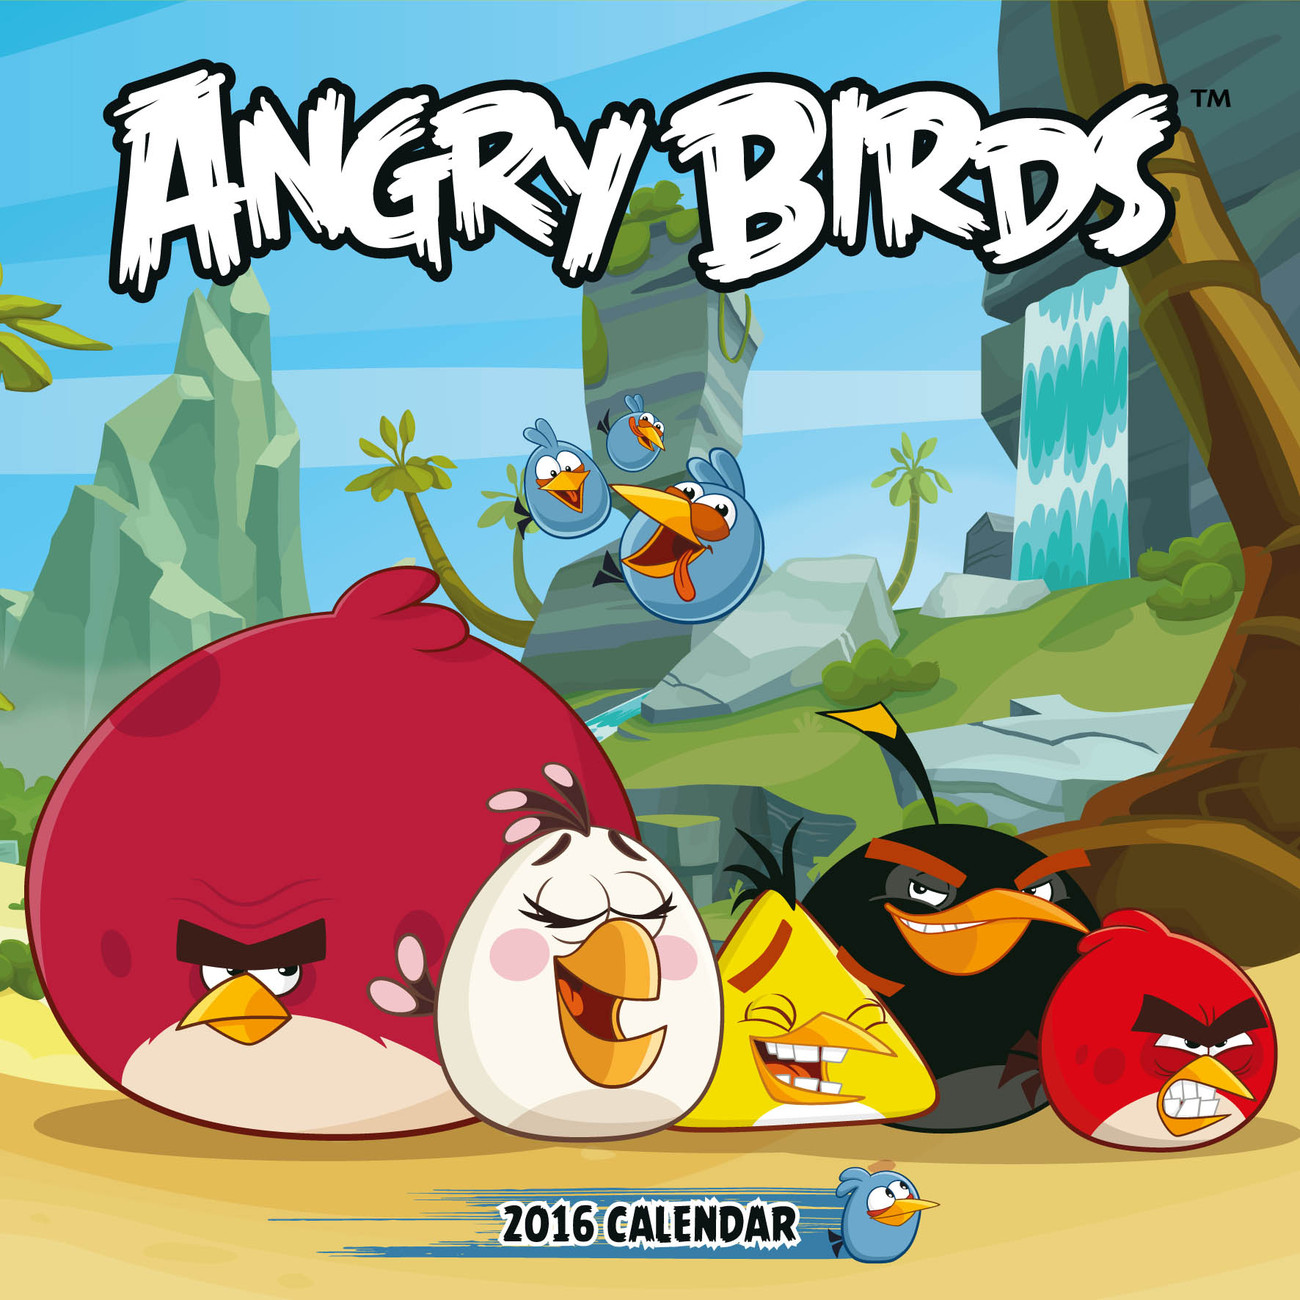 Angry Birds - Calendars 2020 on UKposters/EuroPosters